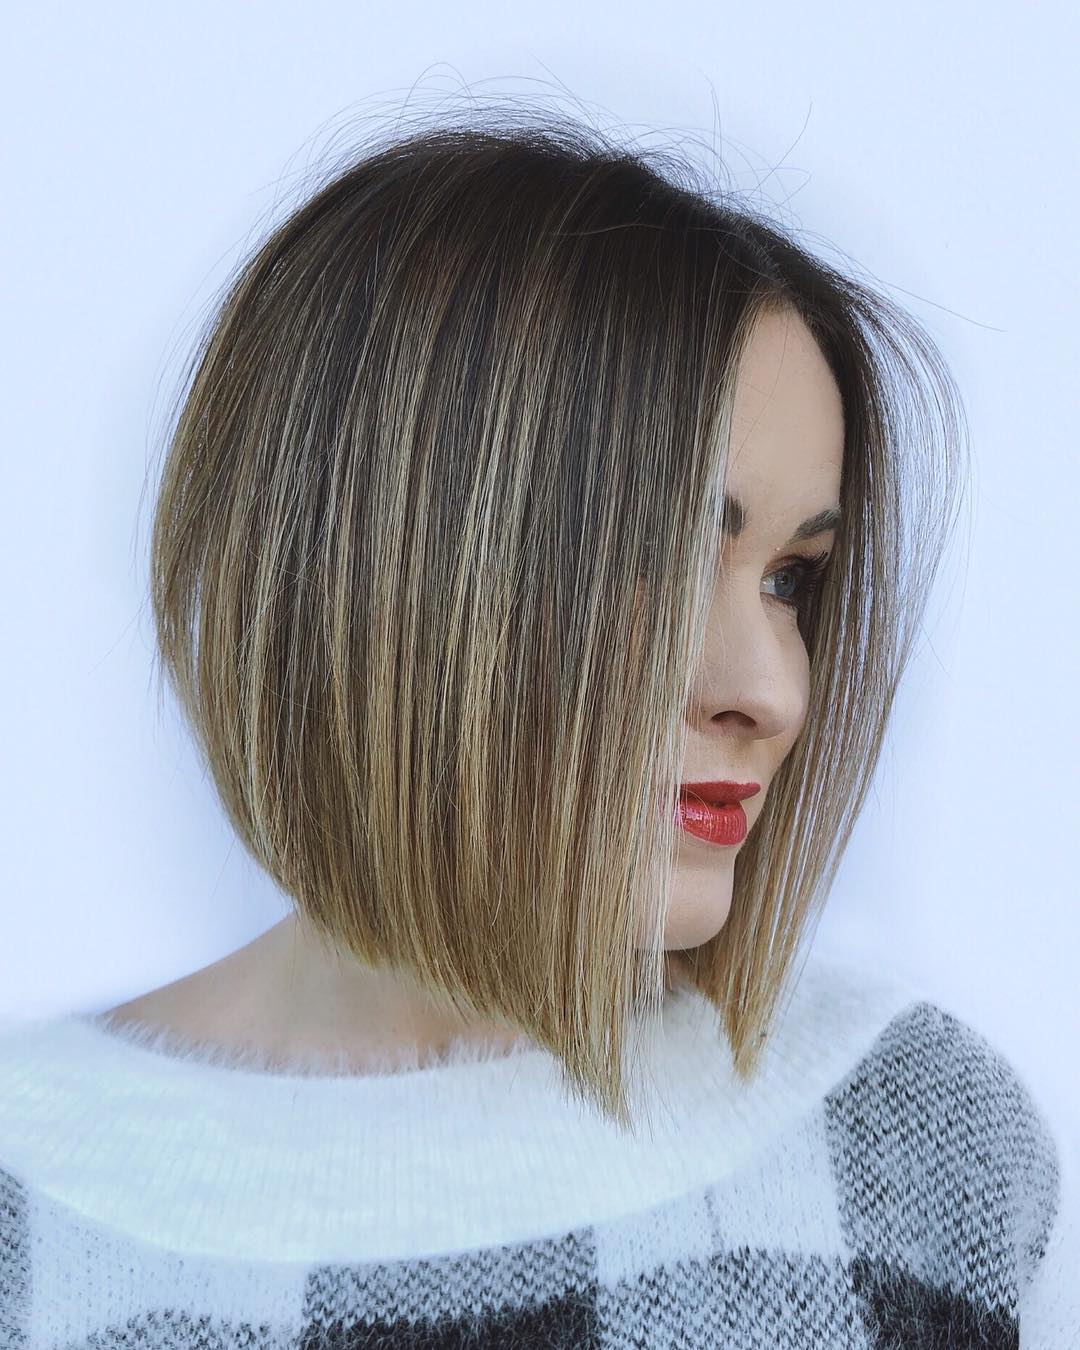 Stylish Short Hairstyles For Thick Hair Women Short